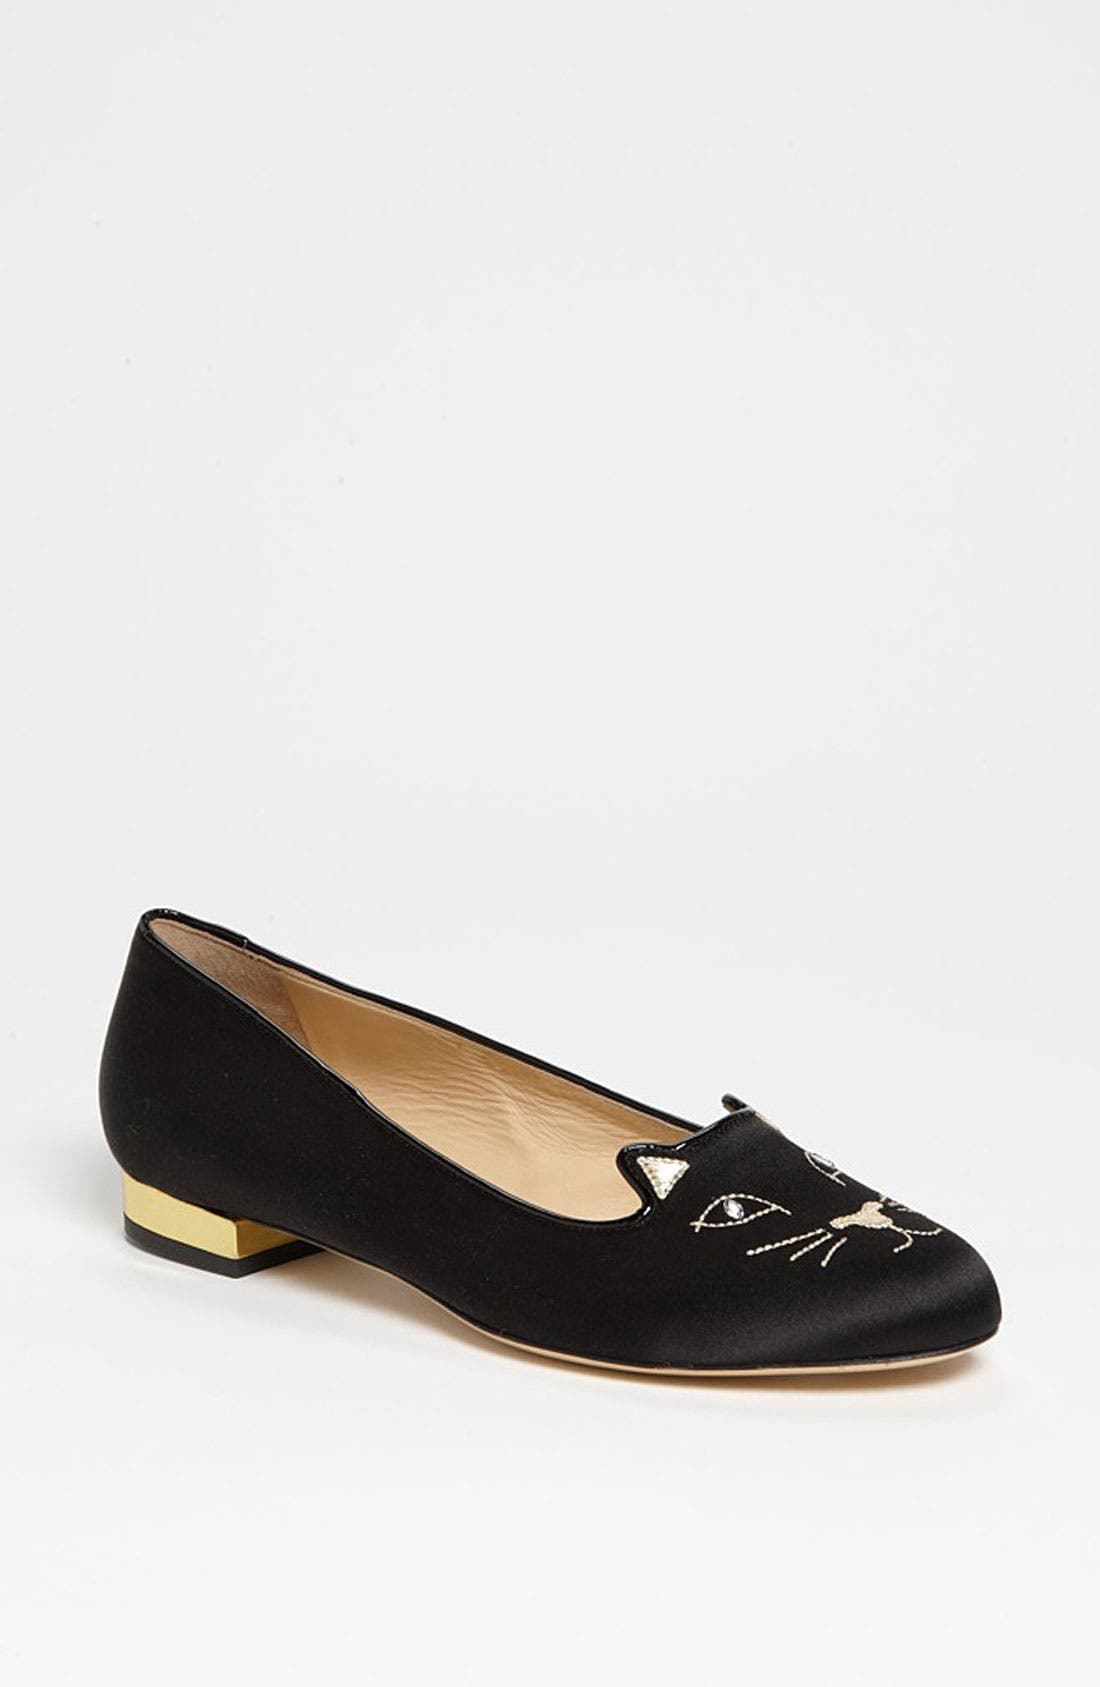 Alternate Image 1 Selected - Charlotte Olympia 'Kitty' Flat